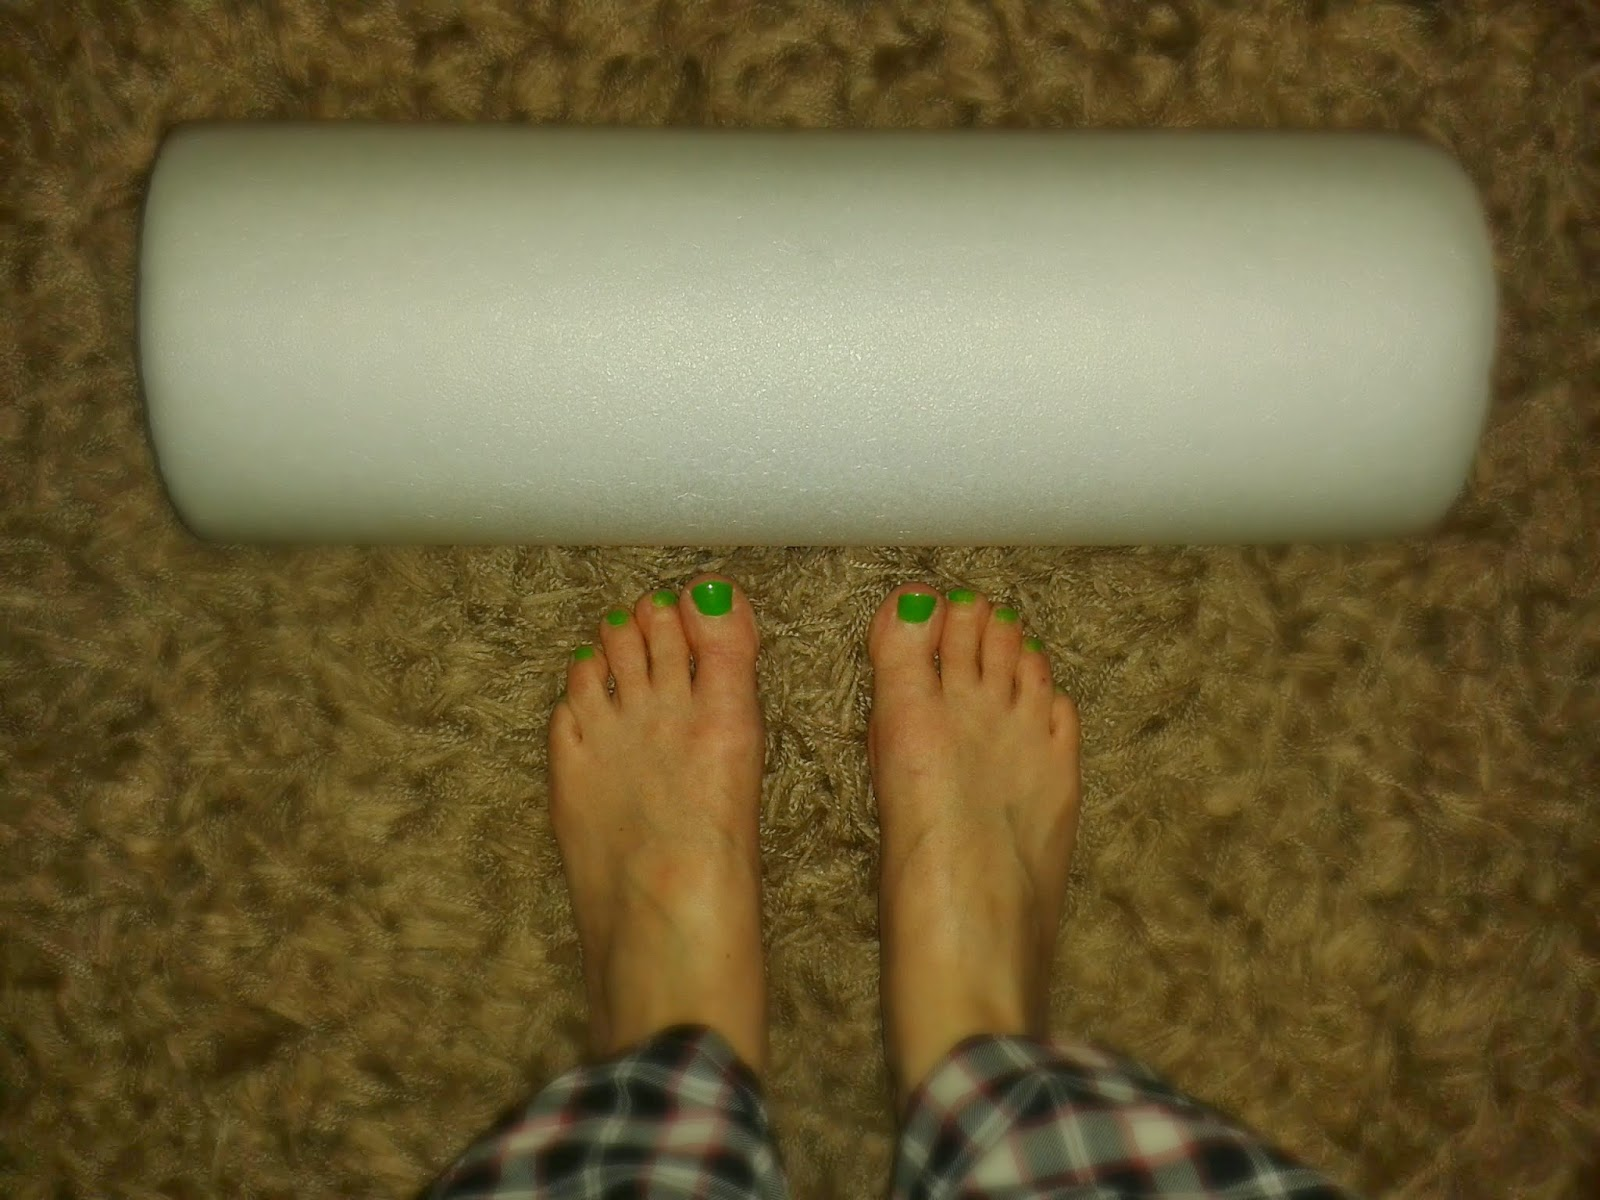 Project 365 day 77 - Foam roller // 76sunflowers